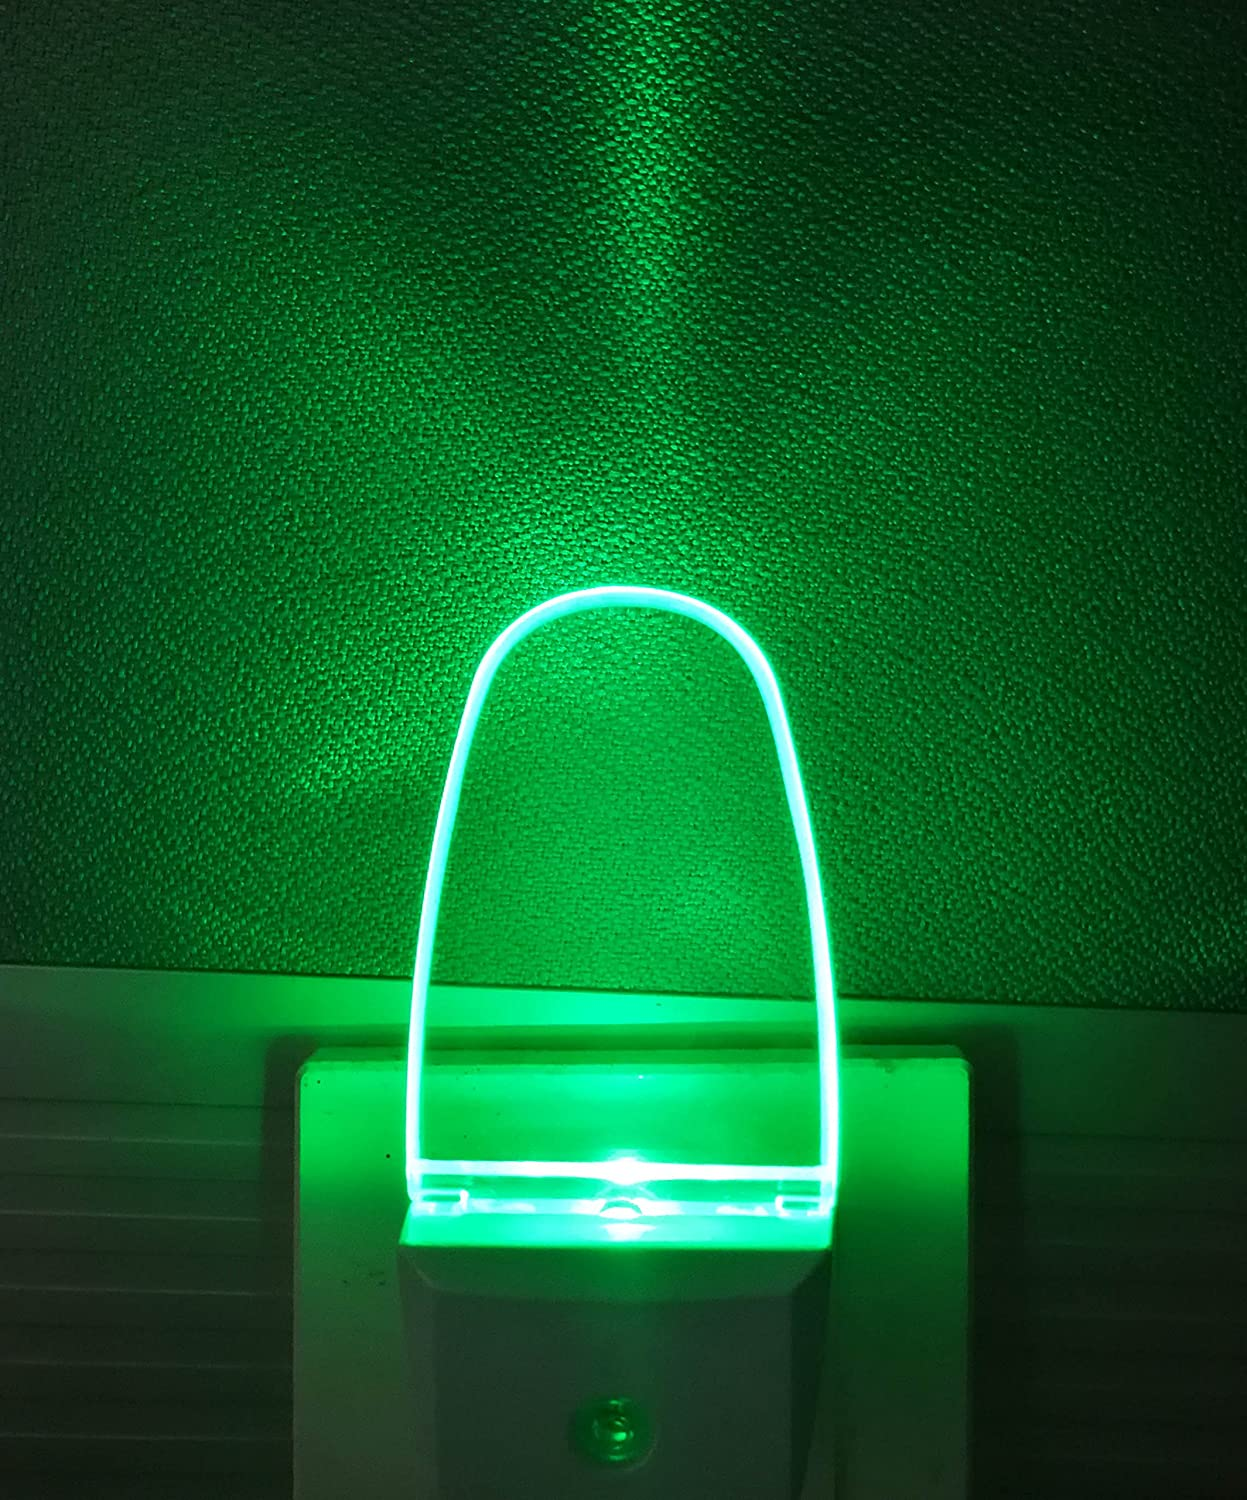 Plug in LED Night Light with Auto Sensor for Adults, Kids, 2 Pack, Green night light Night Light for Babies Reviews – Top 5 Recommended Night Light 91sCVpxC7yL